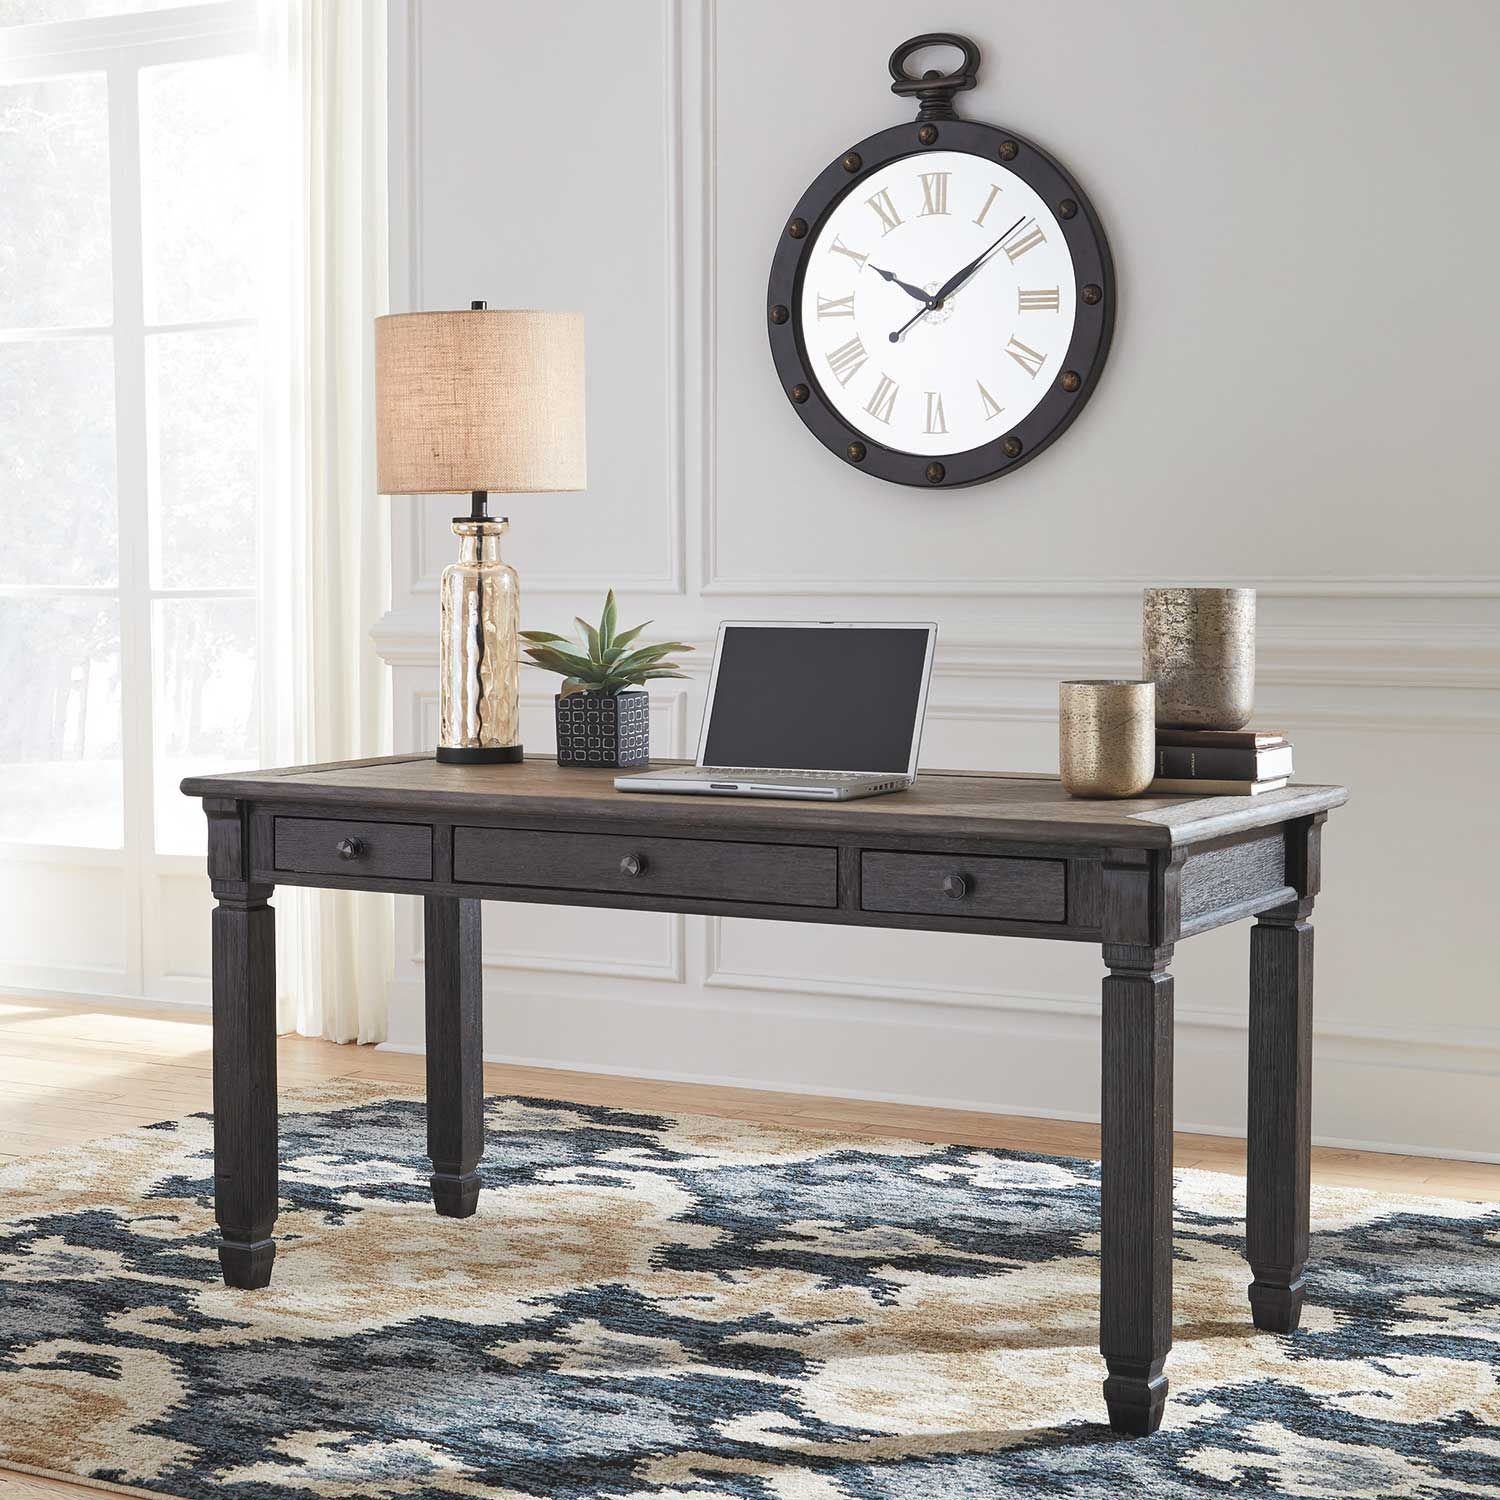 Picture of Tyler Creek Home Office Desk